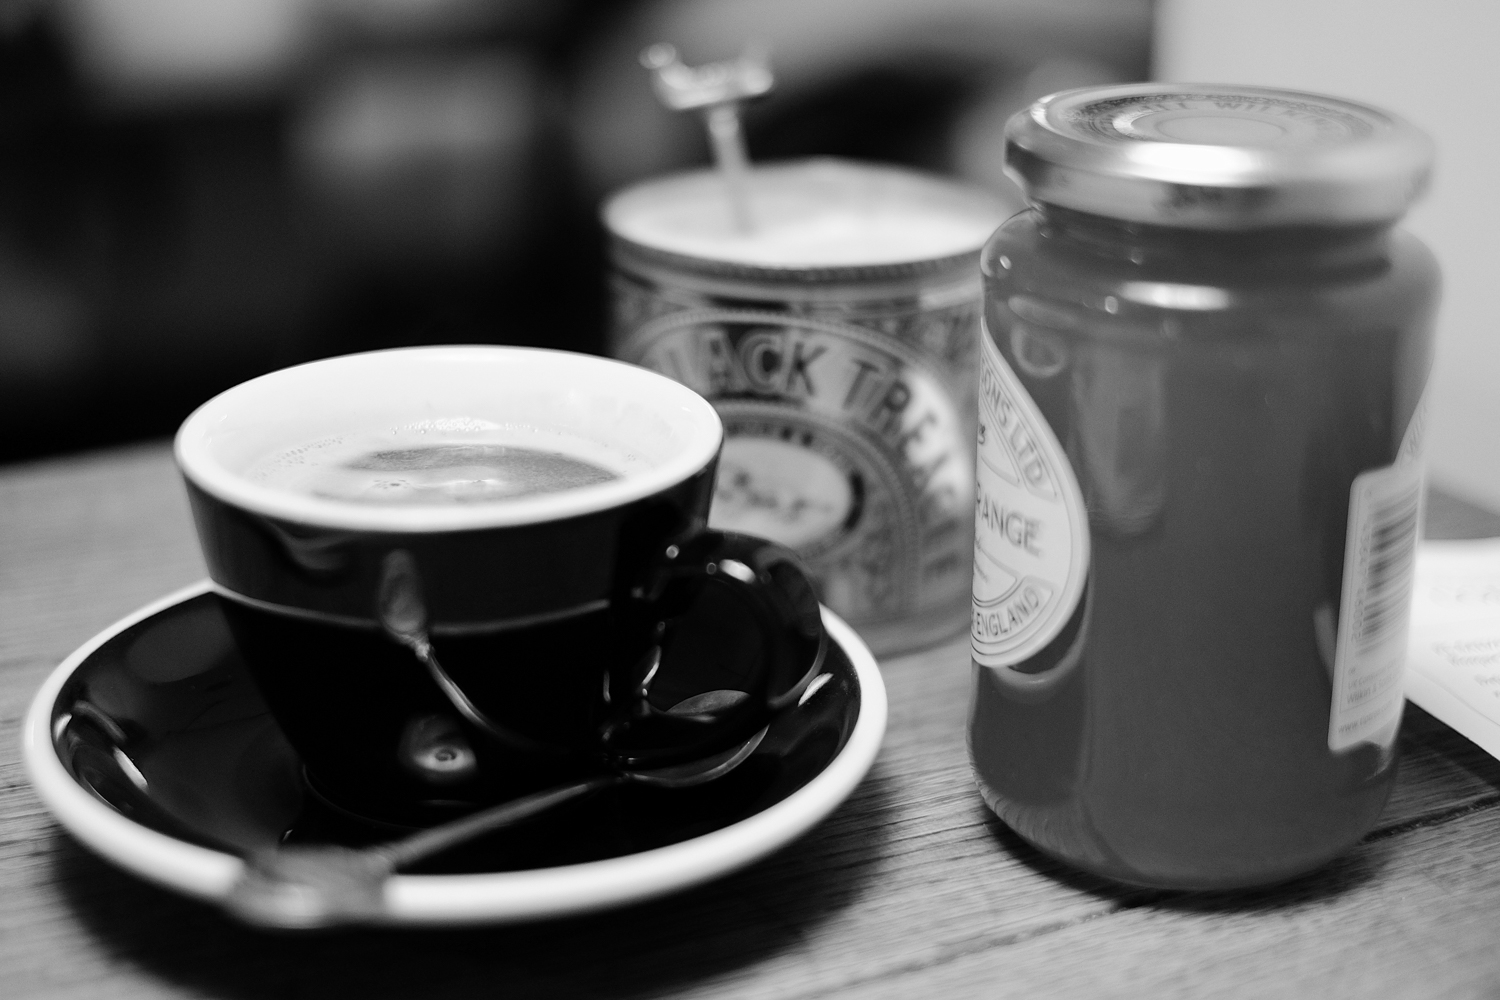 Fujifilm X-T1 jpeg file of a cup of coffee in Tap Coffee, London.